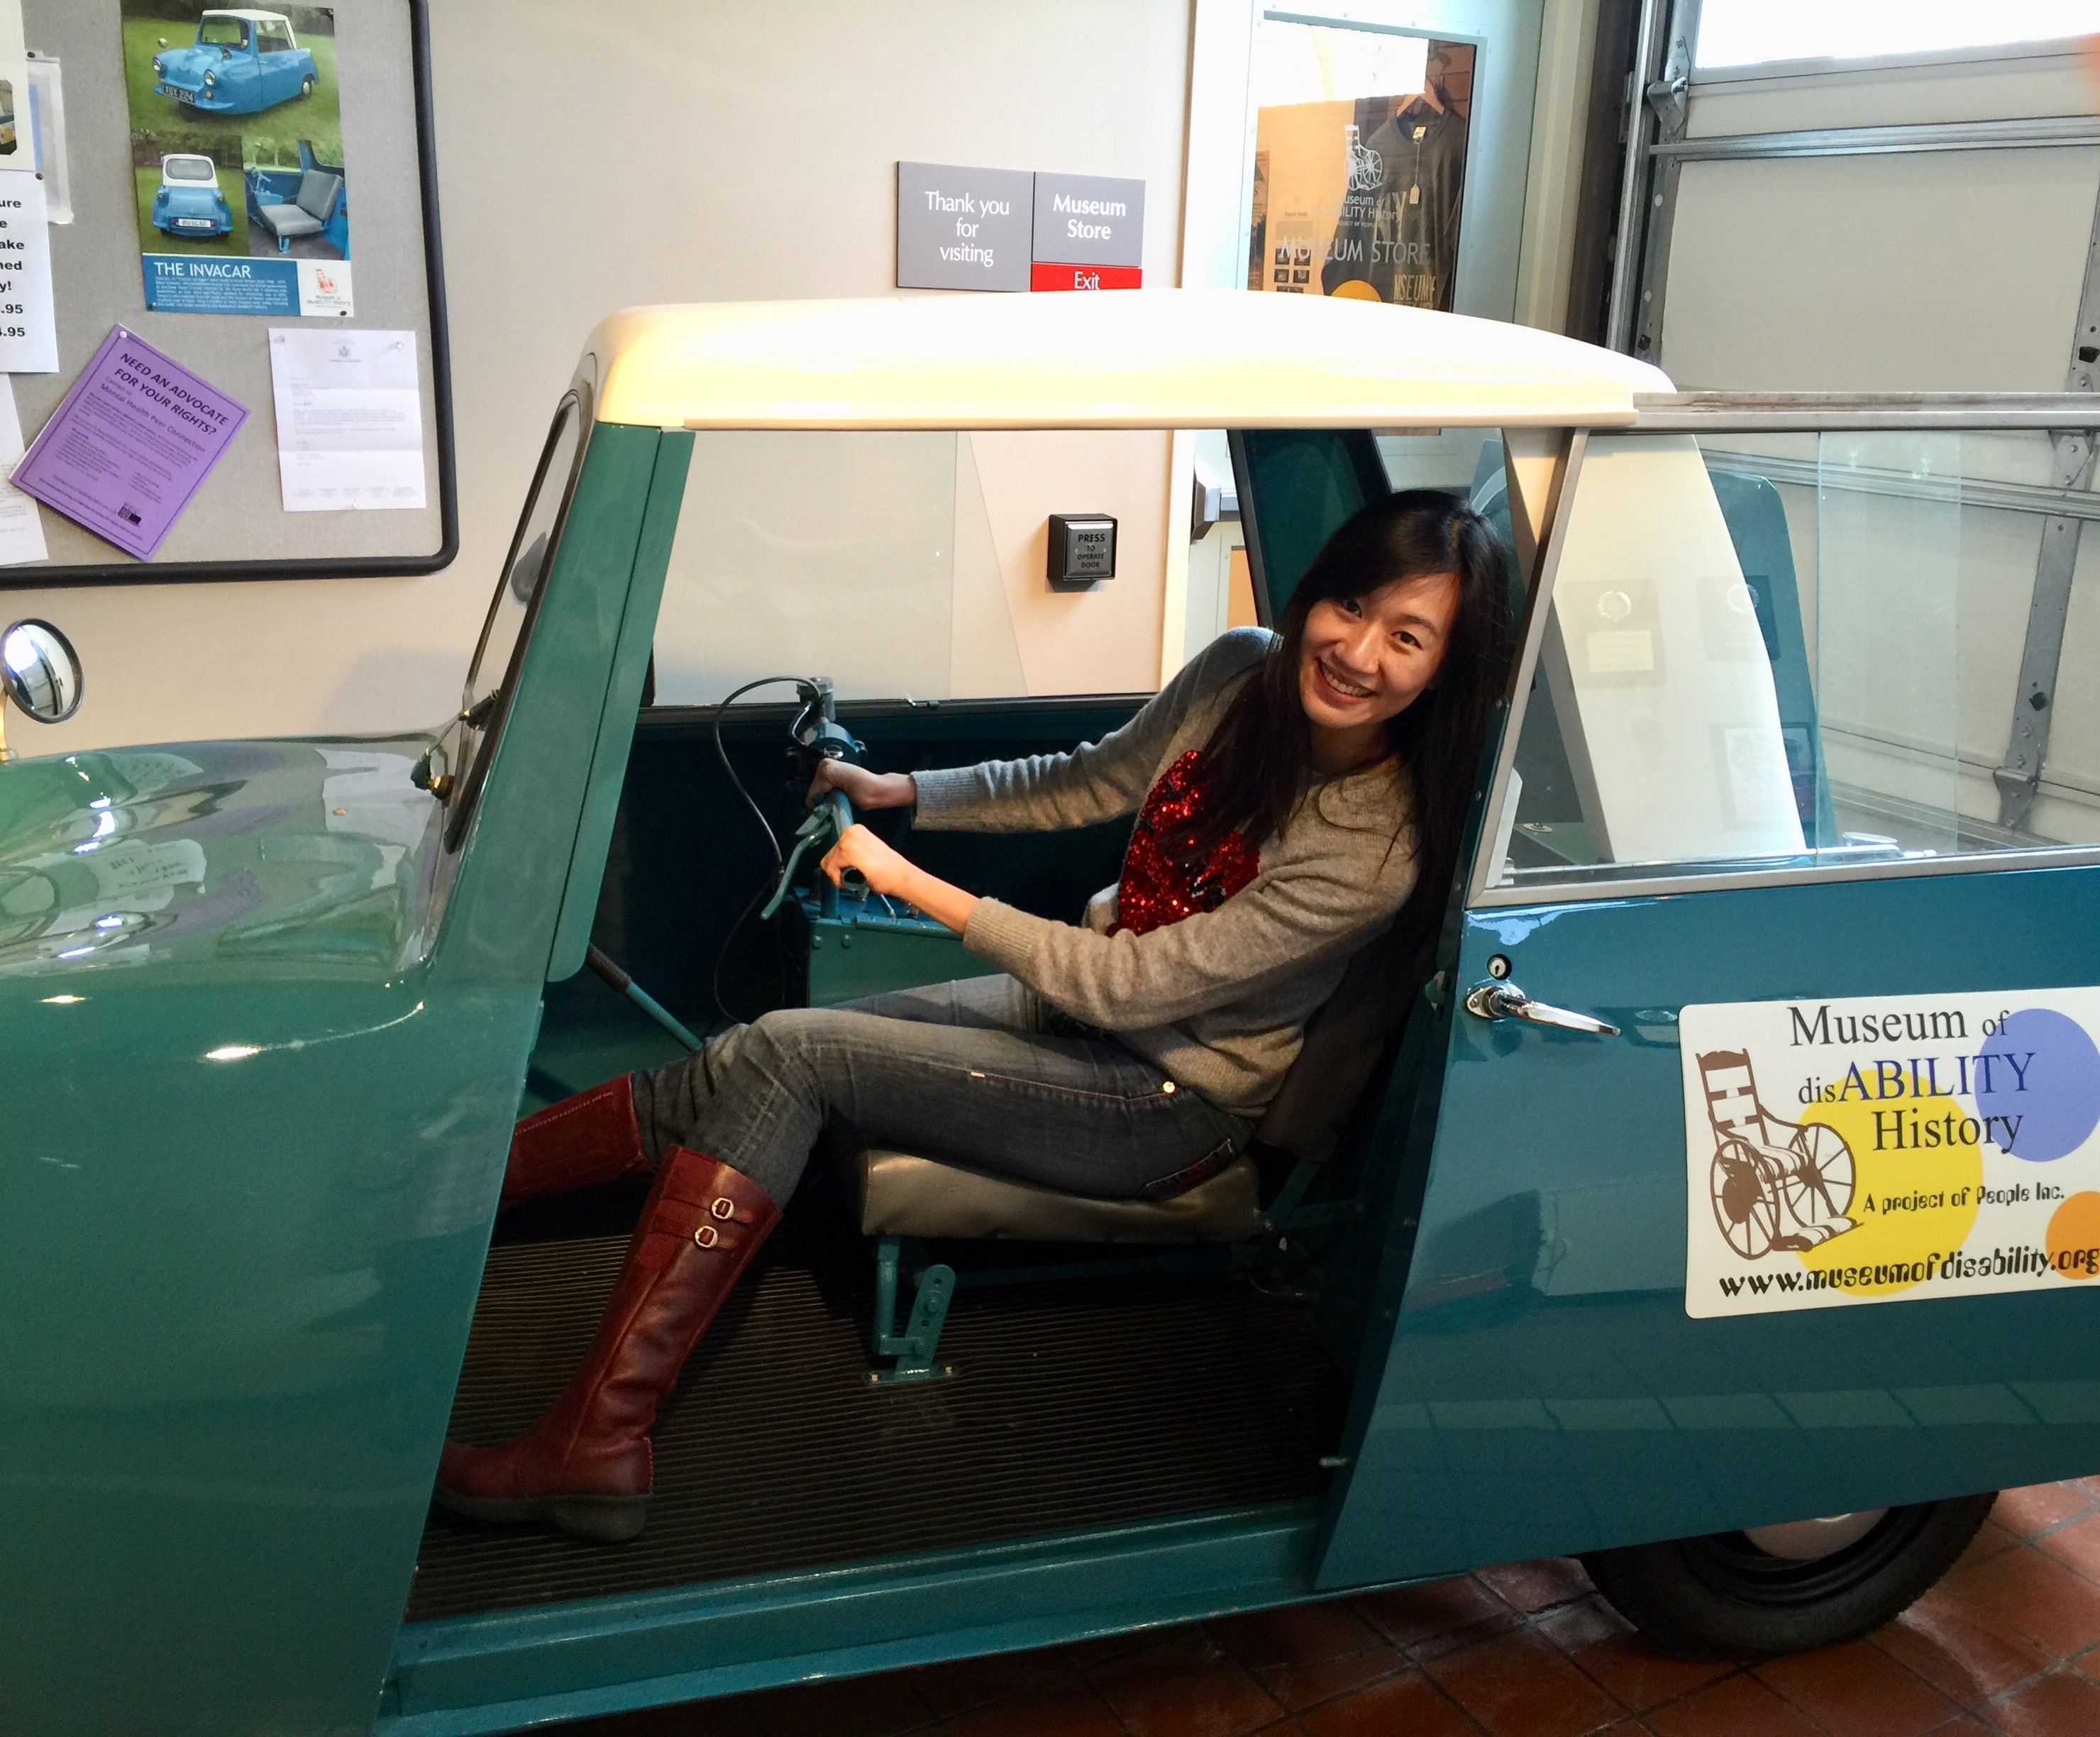 Sandie Yi at Museum of Disability History sits in a blue car with the door open smiling at the camera